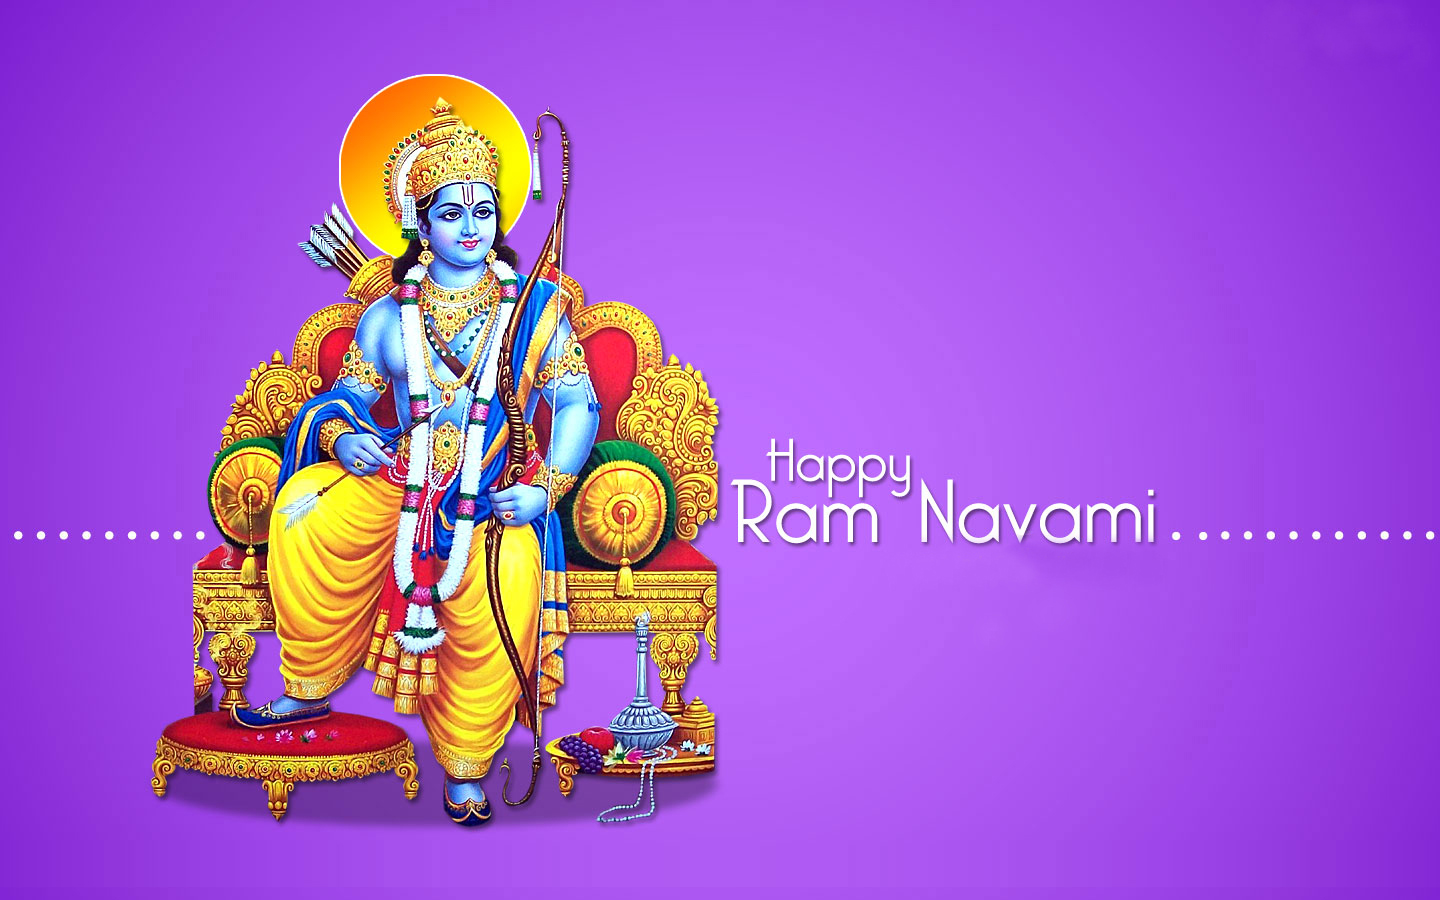 Sri Ram Navami 2018 Wishes Hd Images Messages Quotes